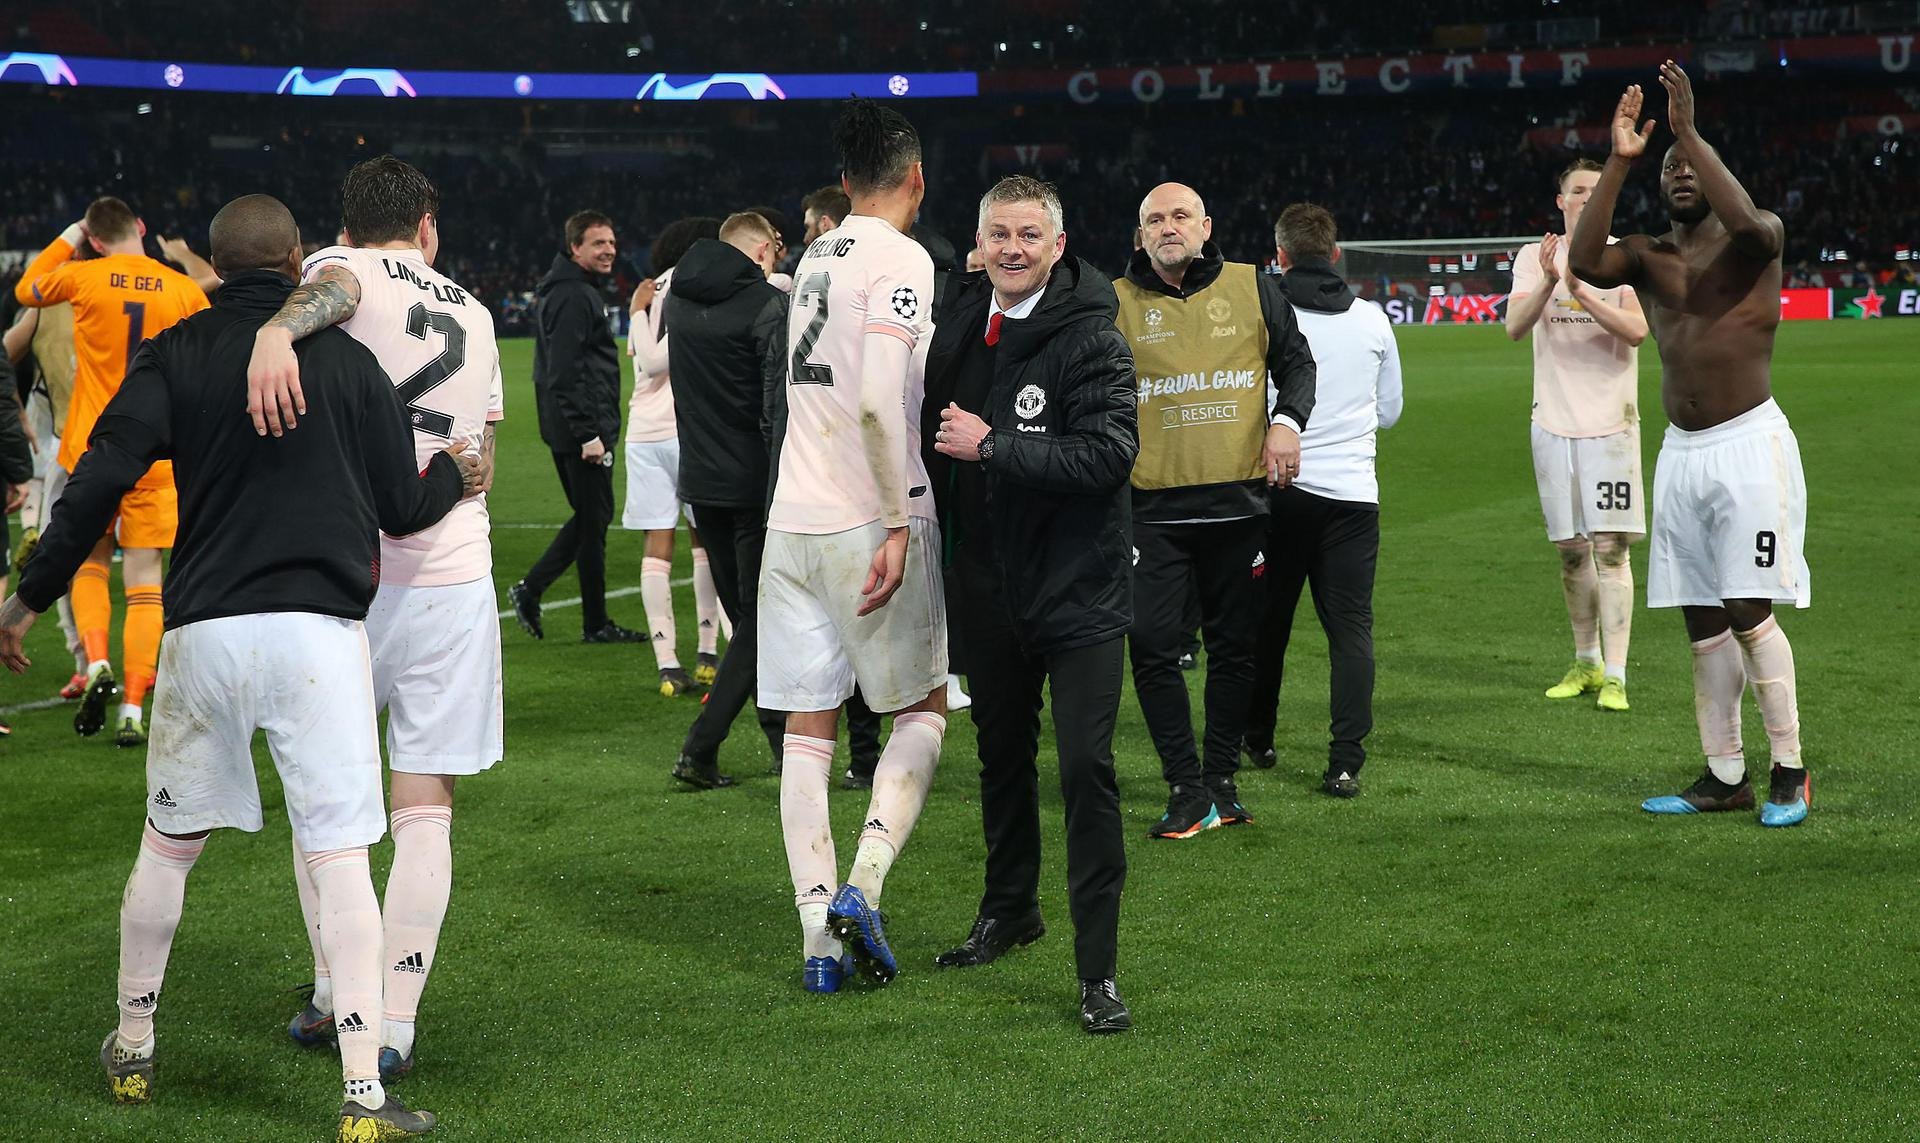 Ole Gunnar Solskjaer on the pitch after the game.